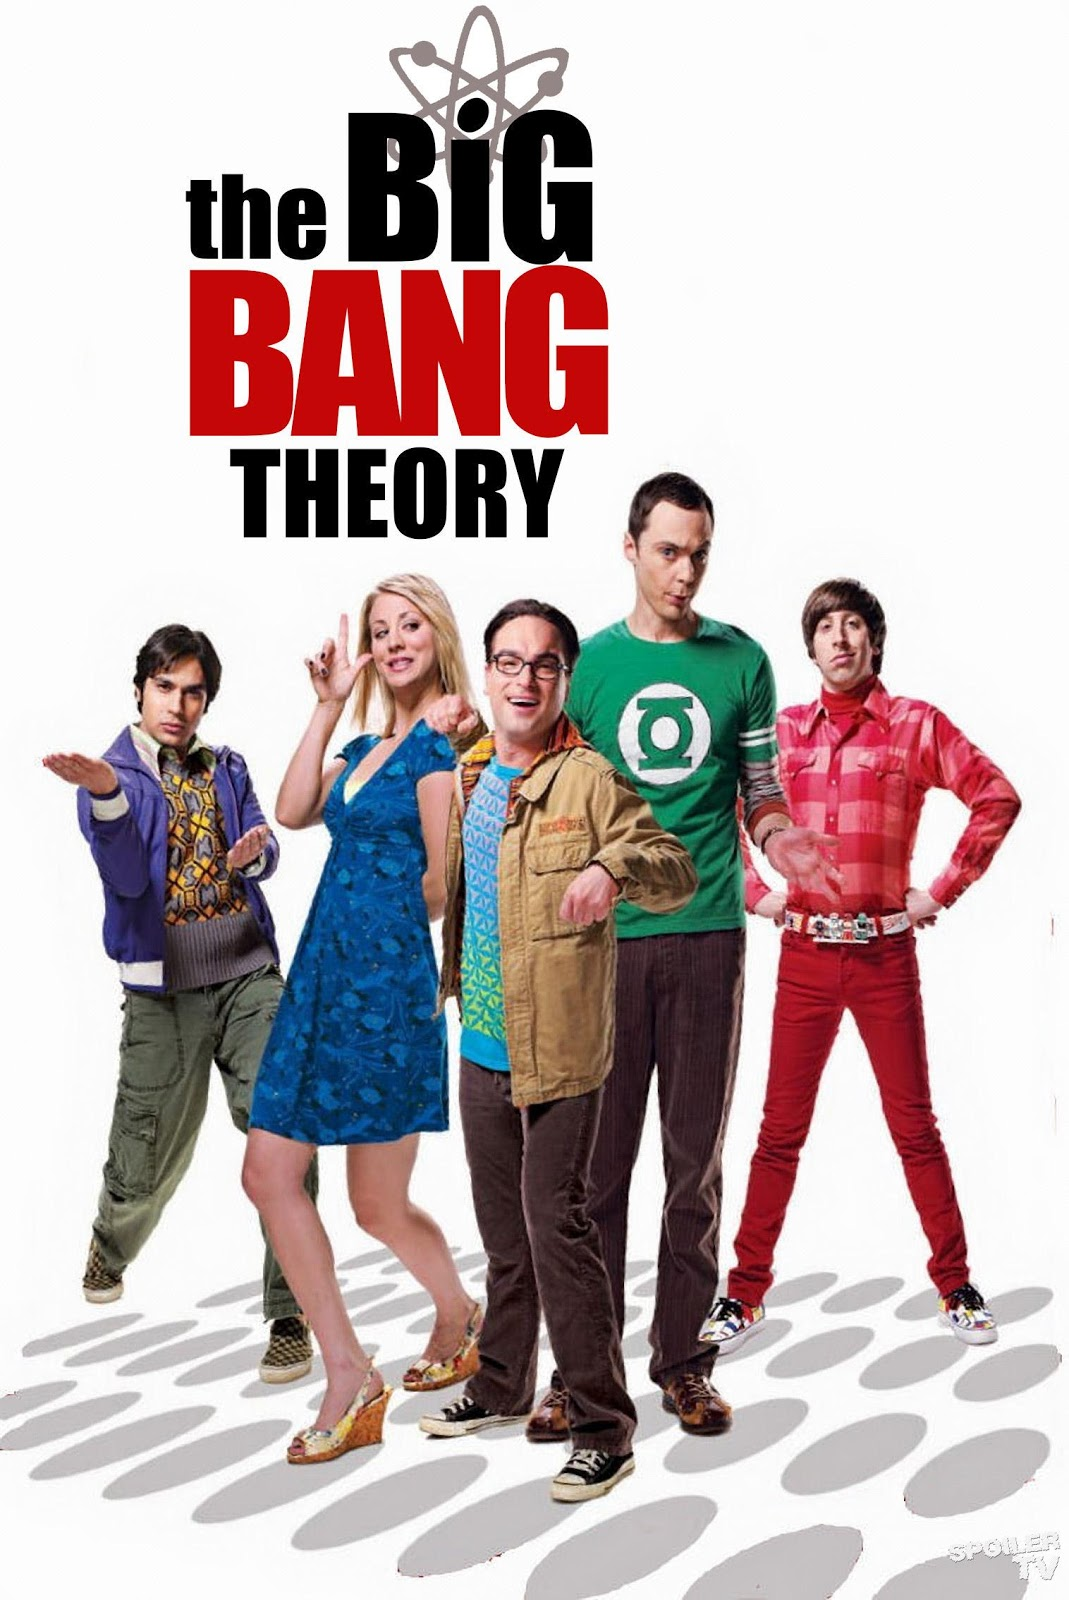 The Big Bagn Theory The Big Bang Theory Archives Glamorous Paper